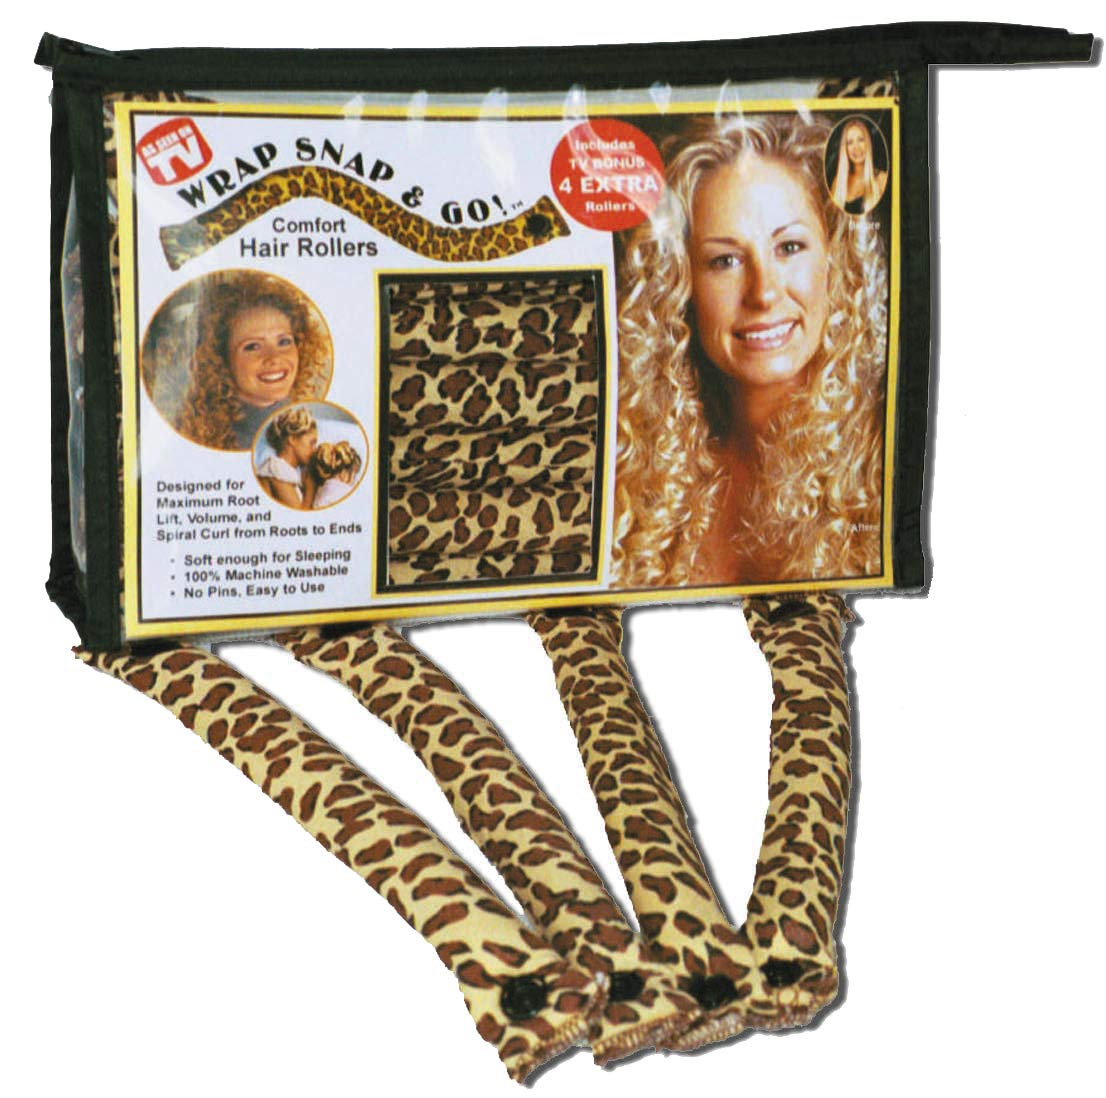 Wrap Snap N Go Hair Rollers by Wrap Snap and Go